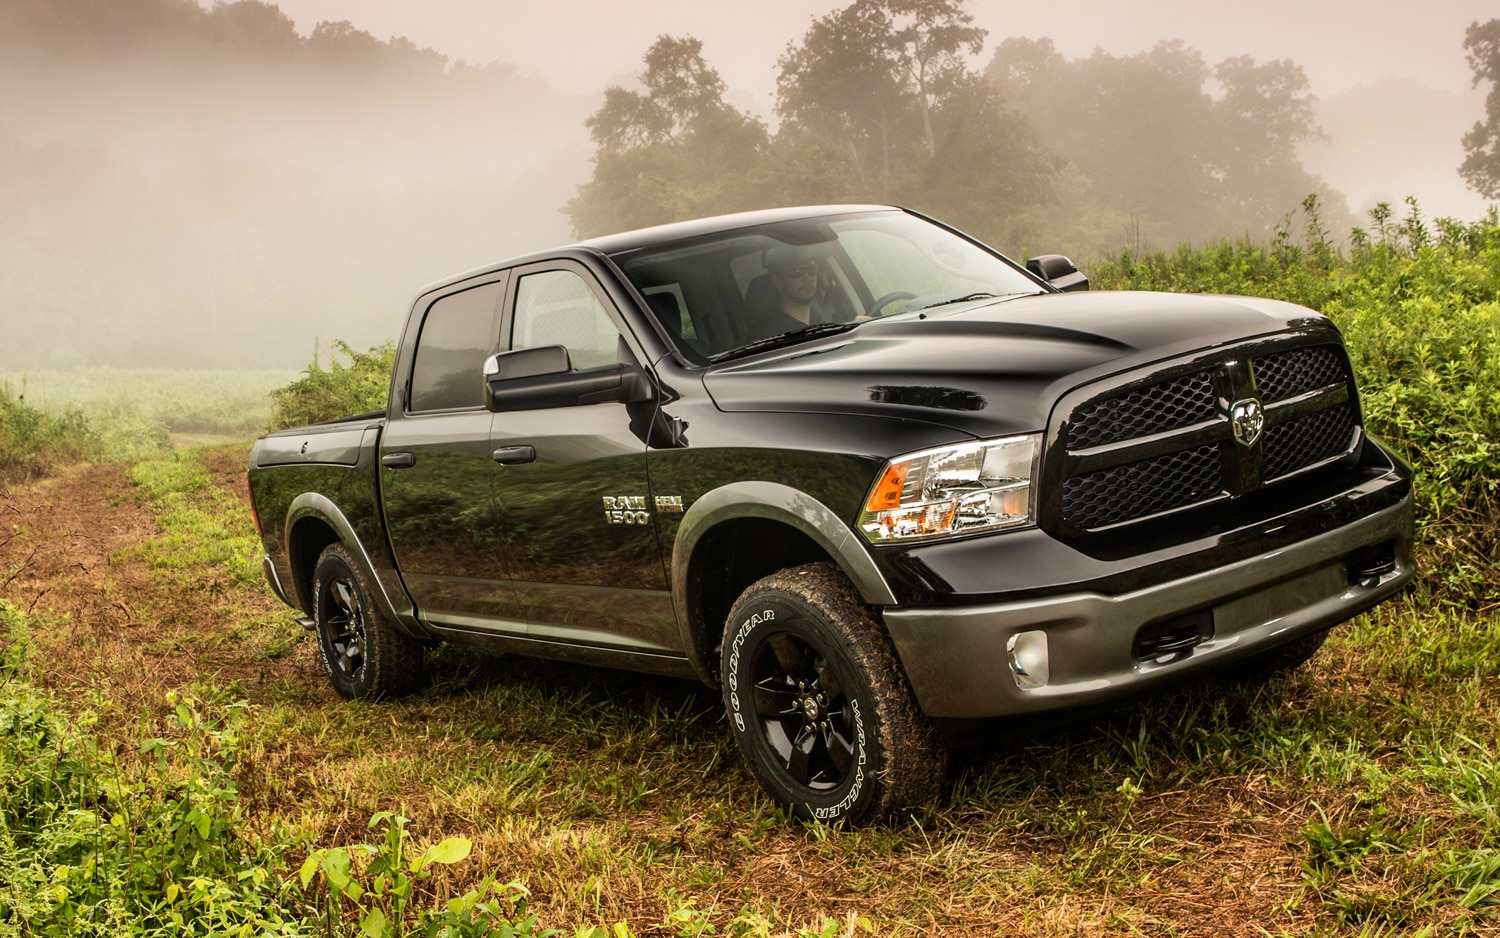 2013 Ram 1500 Front View Off Roading1